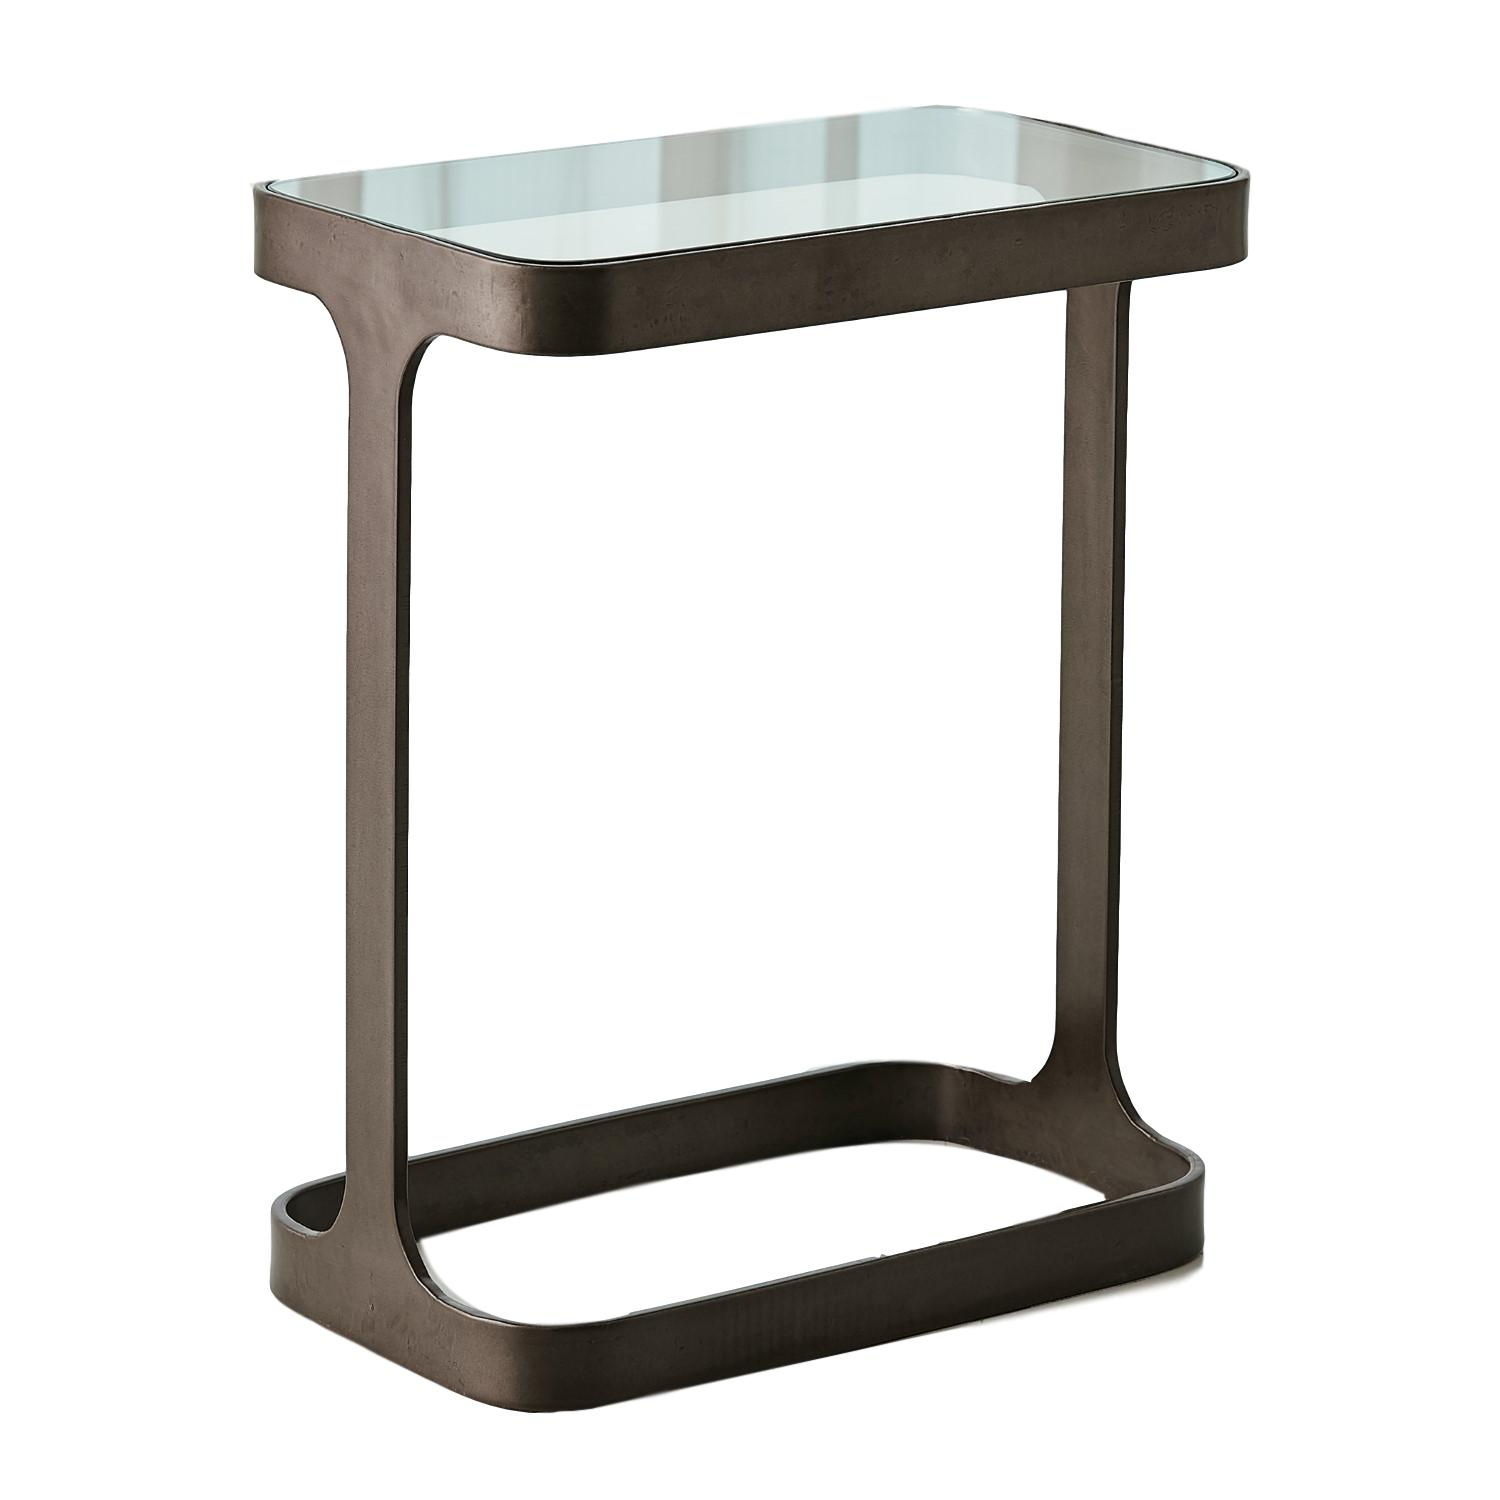 Saddle Table Antique Bronze/Glass   16x9.5x20h  GV7.90868